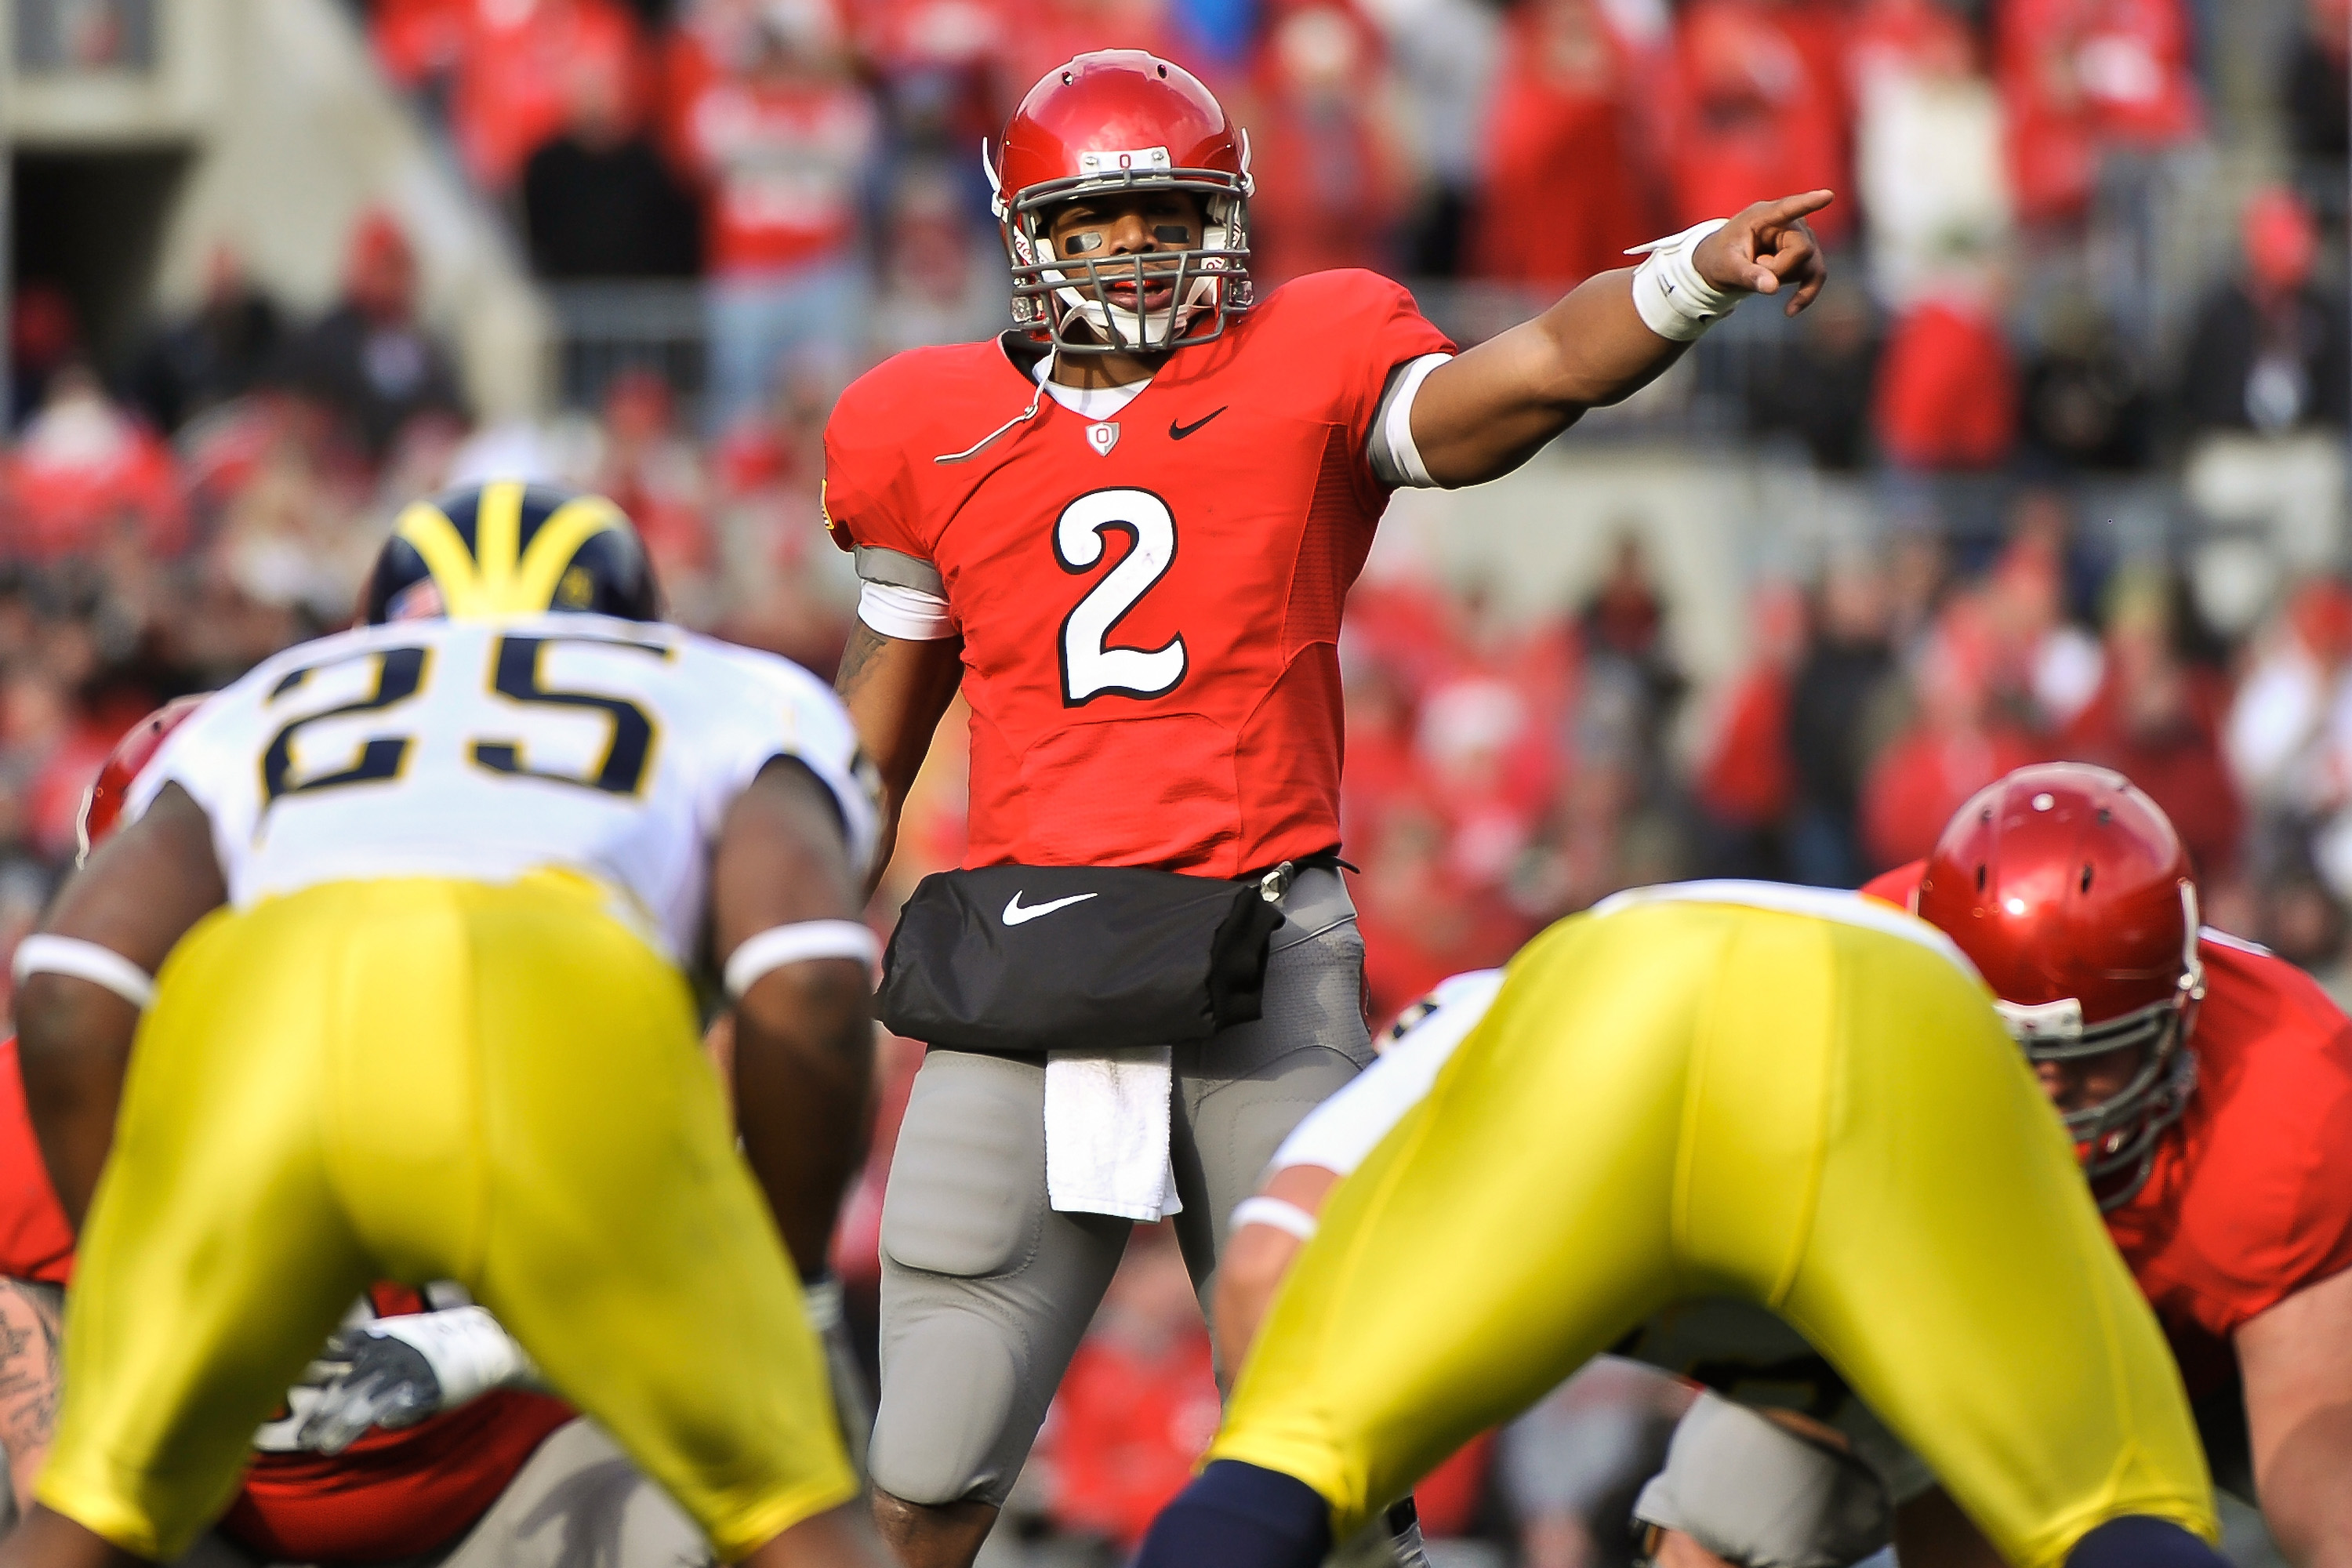 Ohio State Football: What Terrelle Pryor, Other Suspensions Mean for